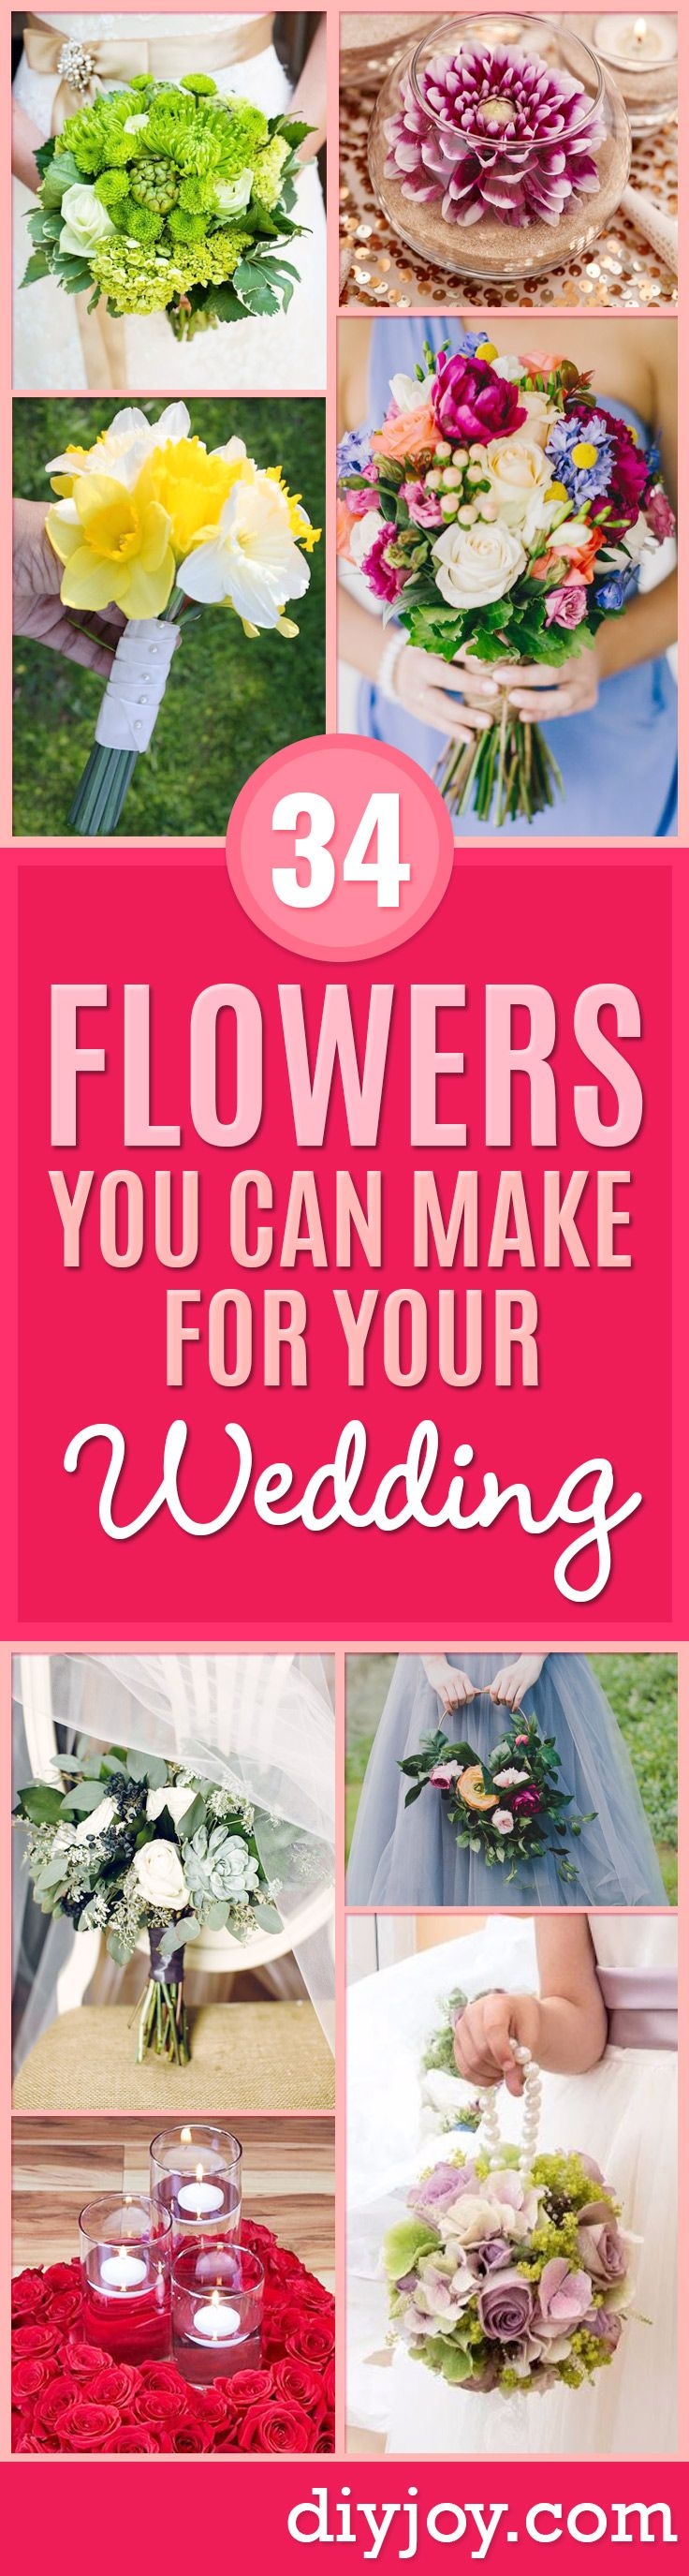 Best 32 Wedding Ideas DIY ideas on Pinterest | Wedding ideas ...